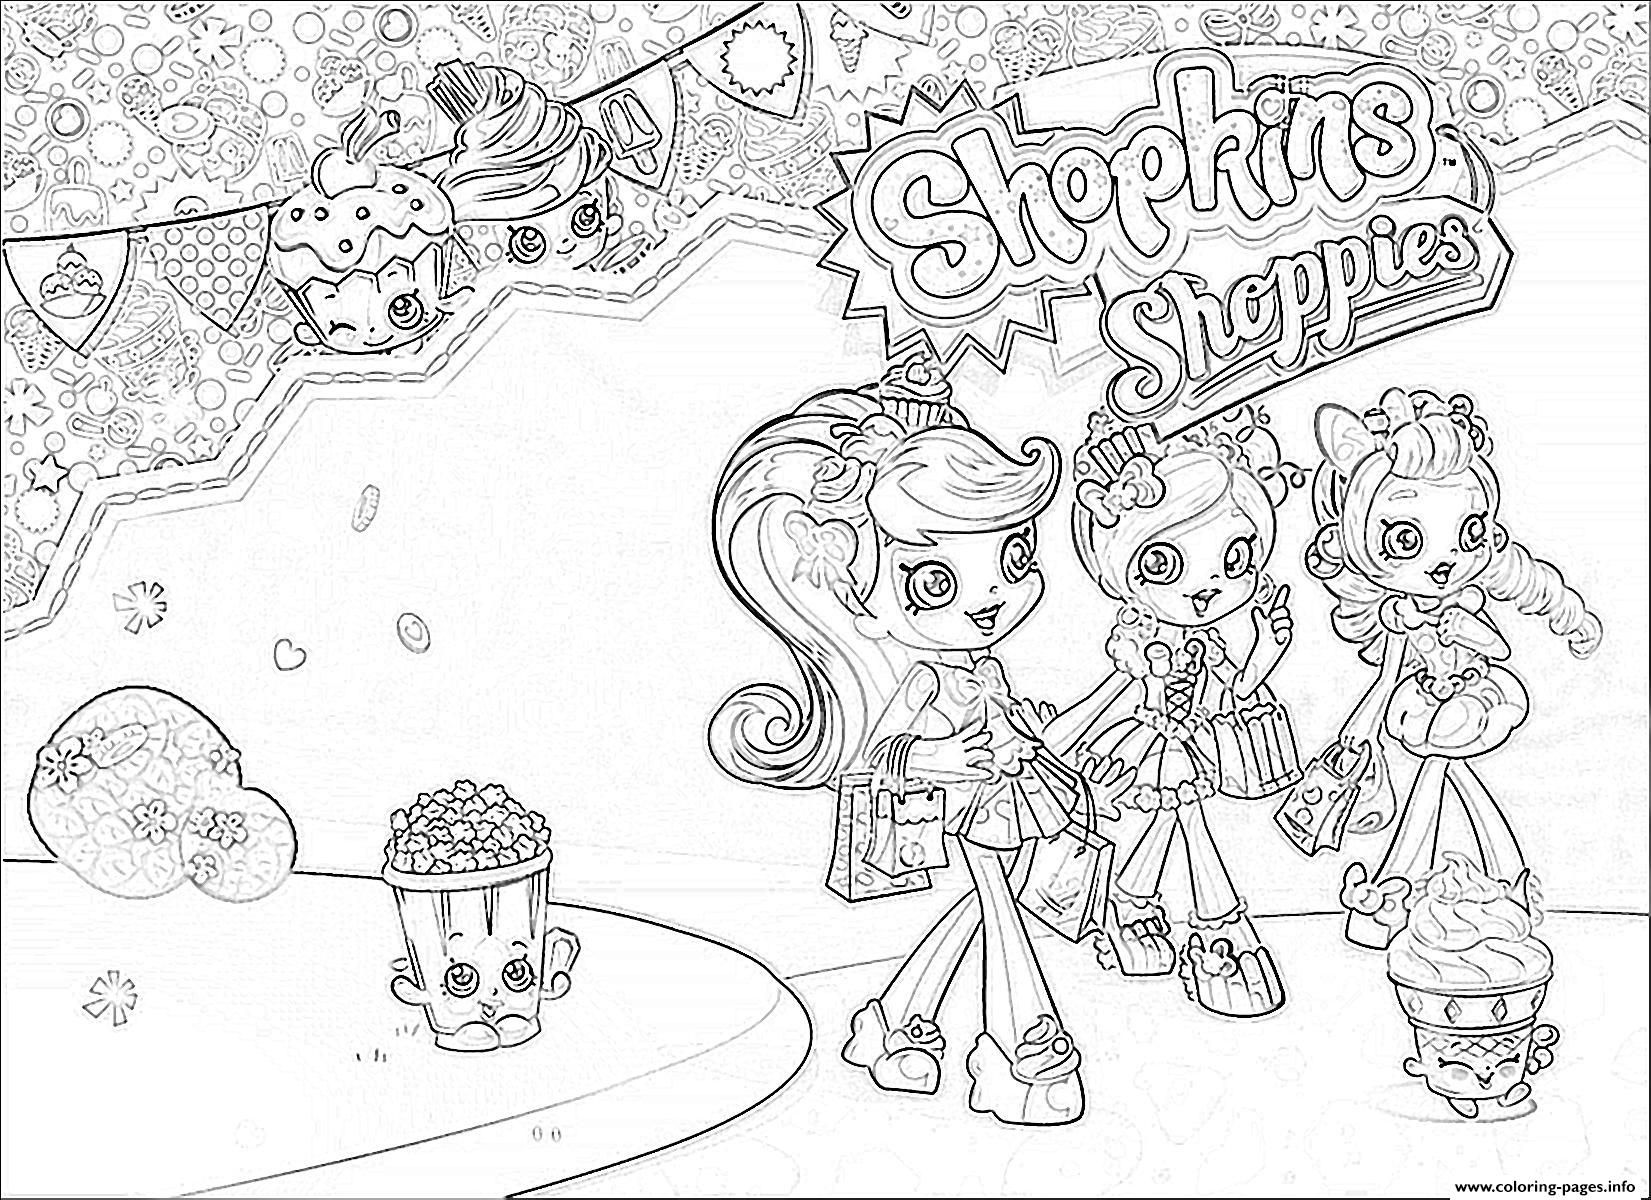 Print Shopkins Shoppies Girls Coloring Pages Shopkins Colouring Pages Memorial Day Coloring Pages Coloring Pages